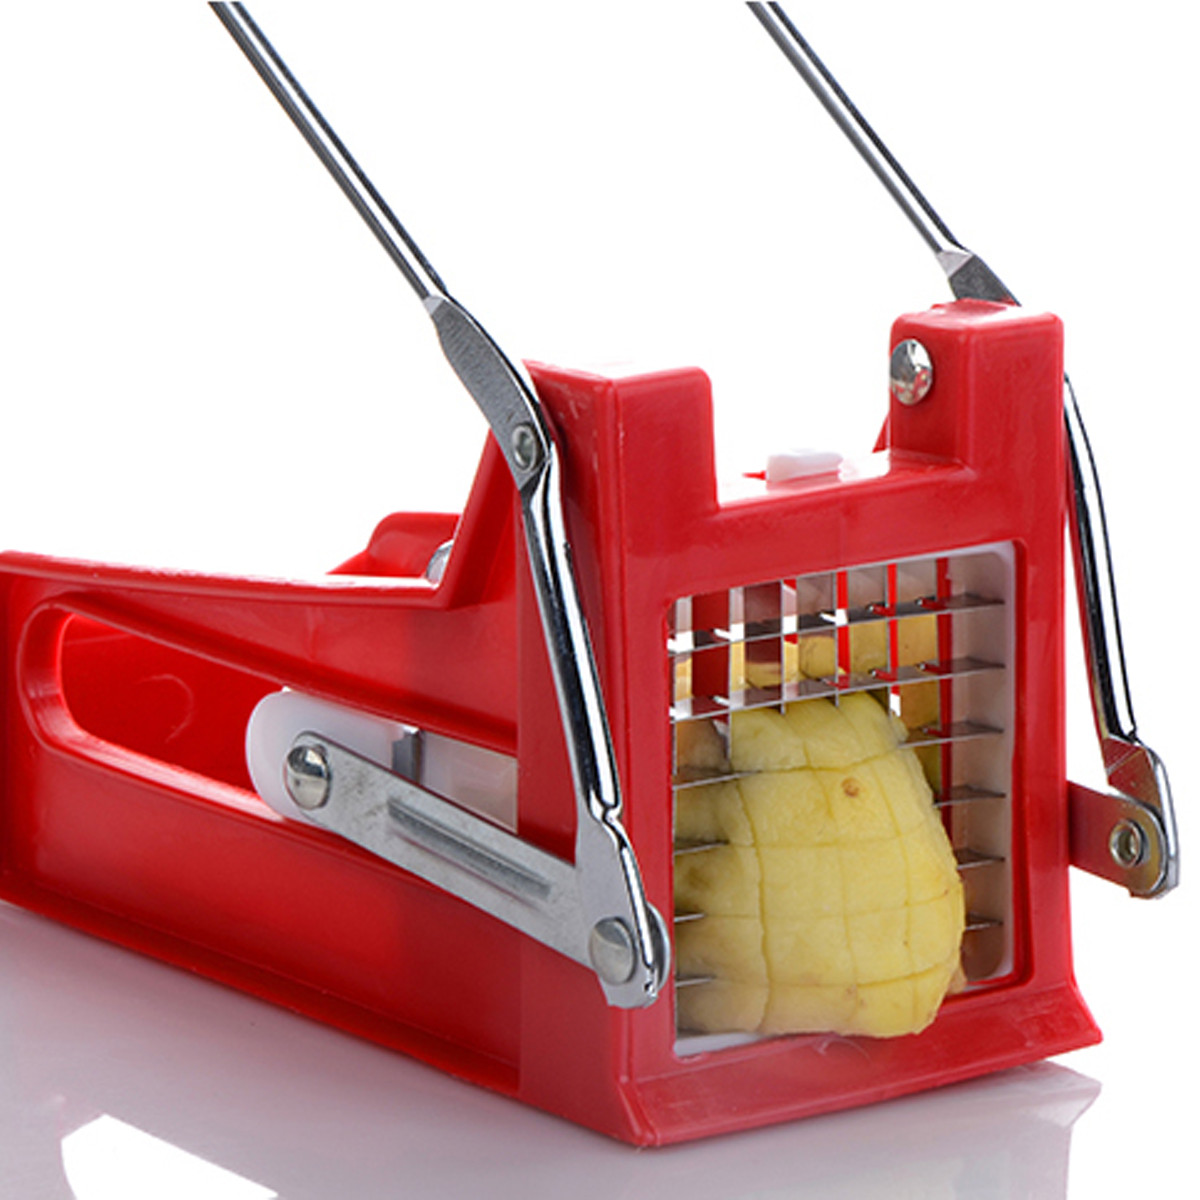 French Fries Cutters Stainless Steel Potato Chips Strip Cutting Machine Maker Slicer Chopper 2 Blades Kitchen Gadgets